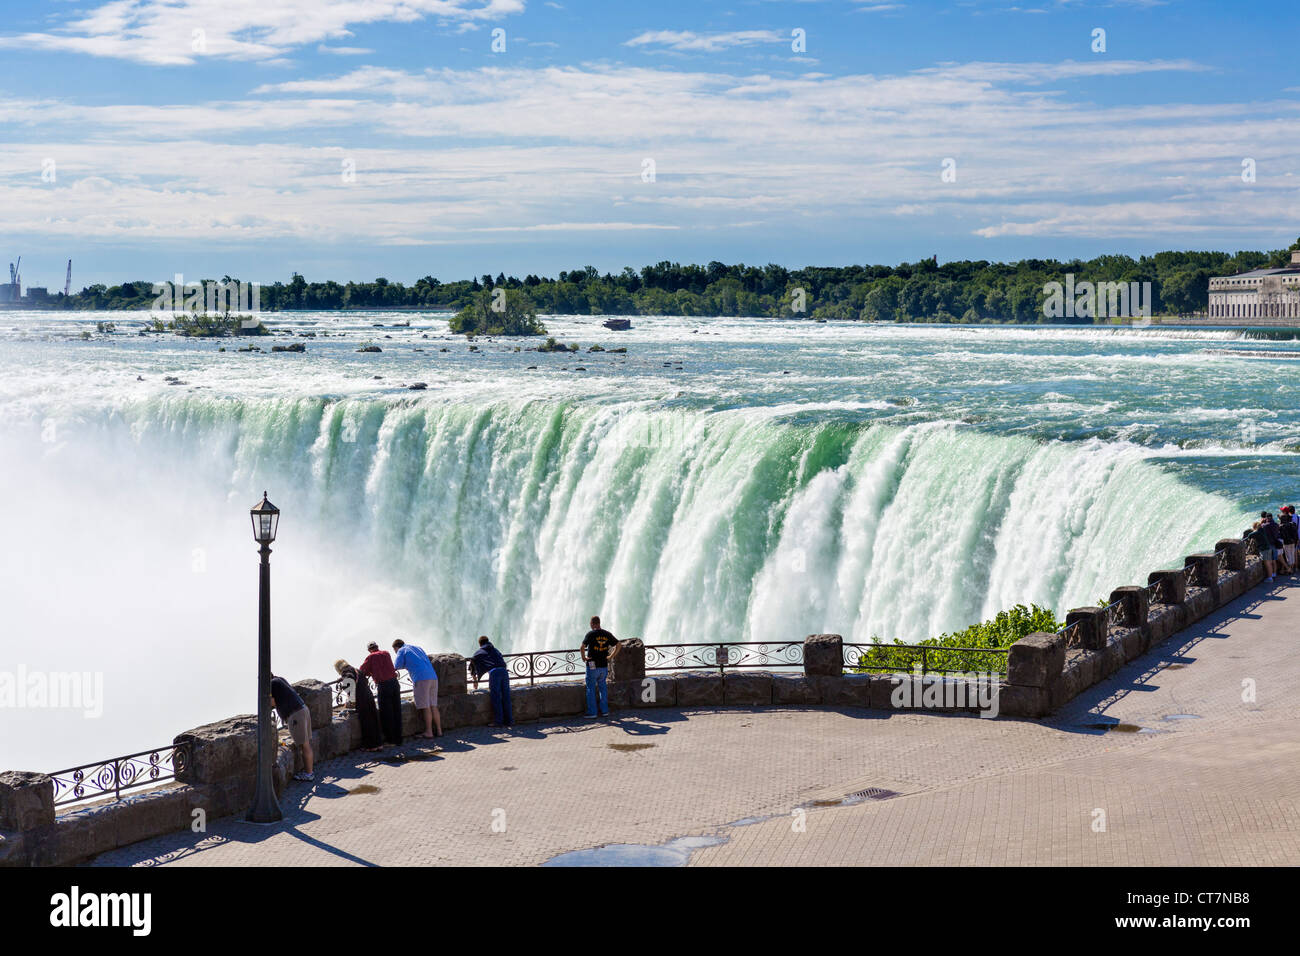 Tourists viewing the Horseshoe Falls from the Canadian side, Niagara Falls , Ontario, Canada - Stock Image